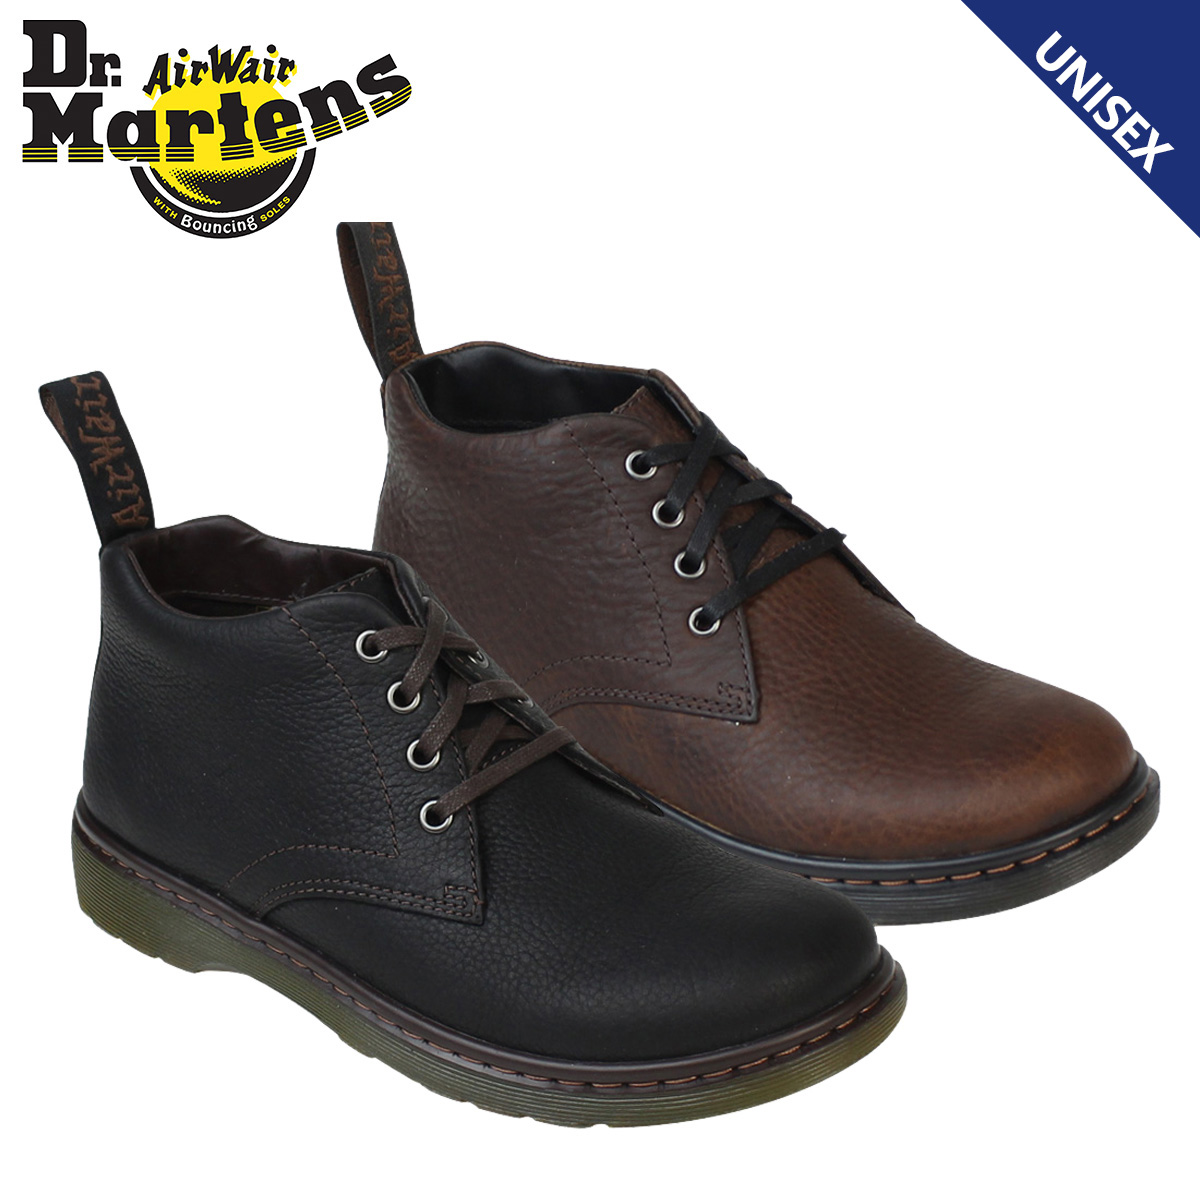 The Doctor Black Shoes Brown Shoes